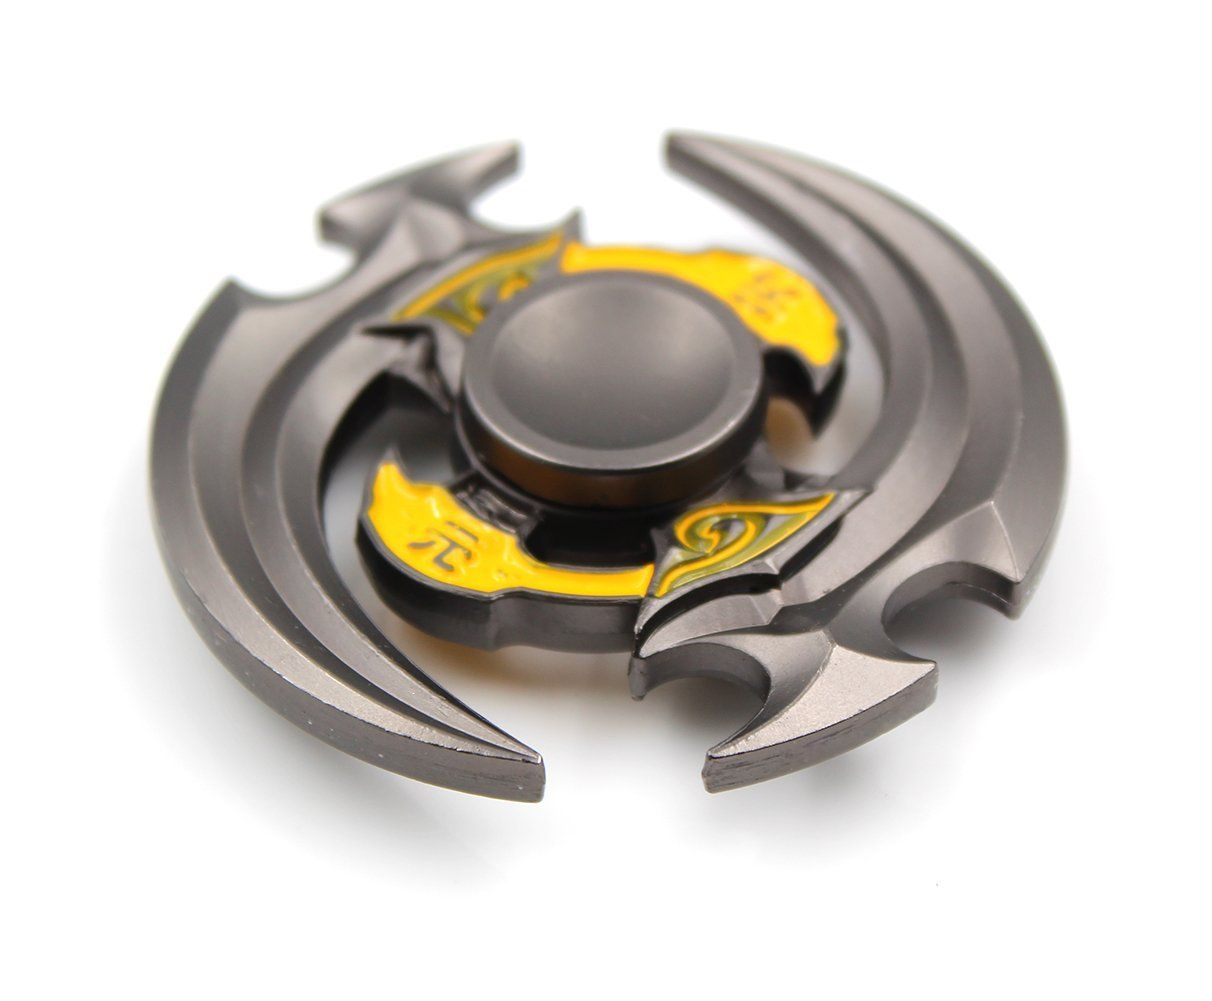 heytech Metal Fidget Spinner Hand Spinners - Fidget Toy EDC Hand Spinner Ultra Durable Zinc Alloy Made